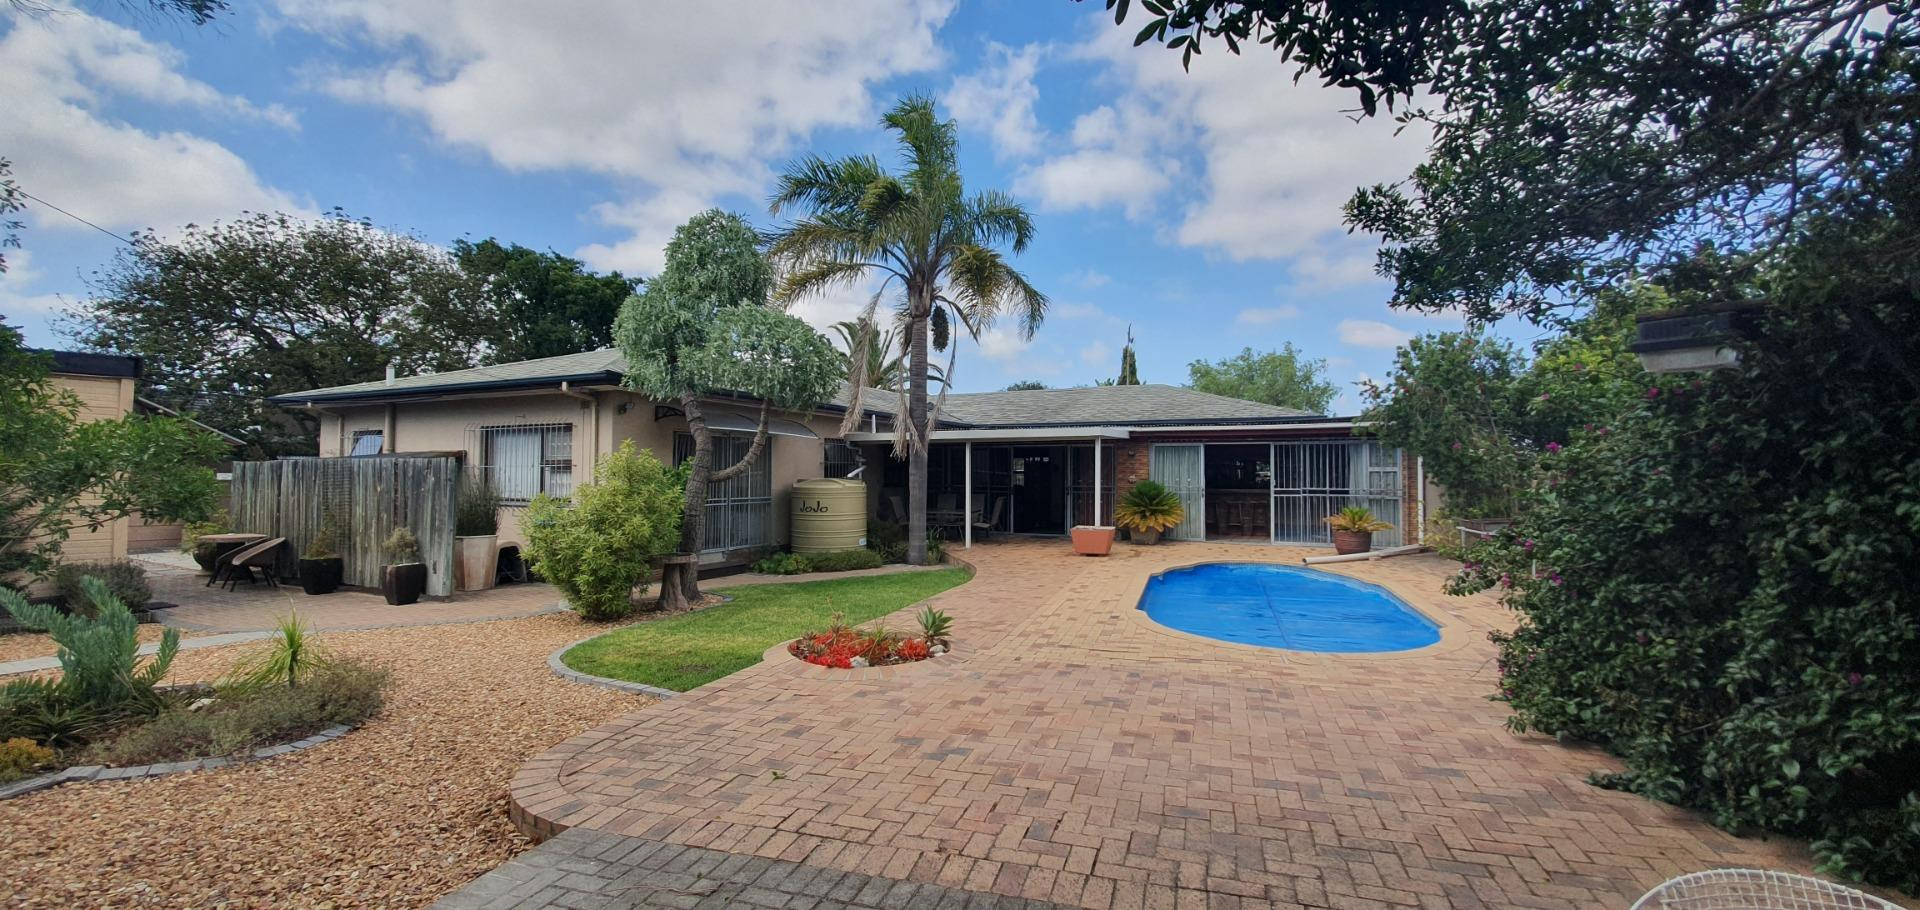 4 Bedroom House for Sale in Amandelrug, Kuils River - Western Cape